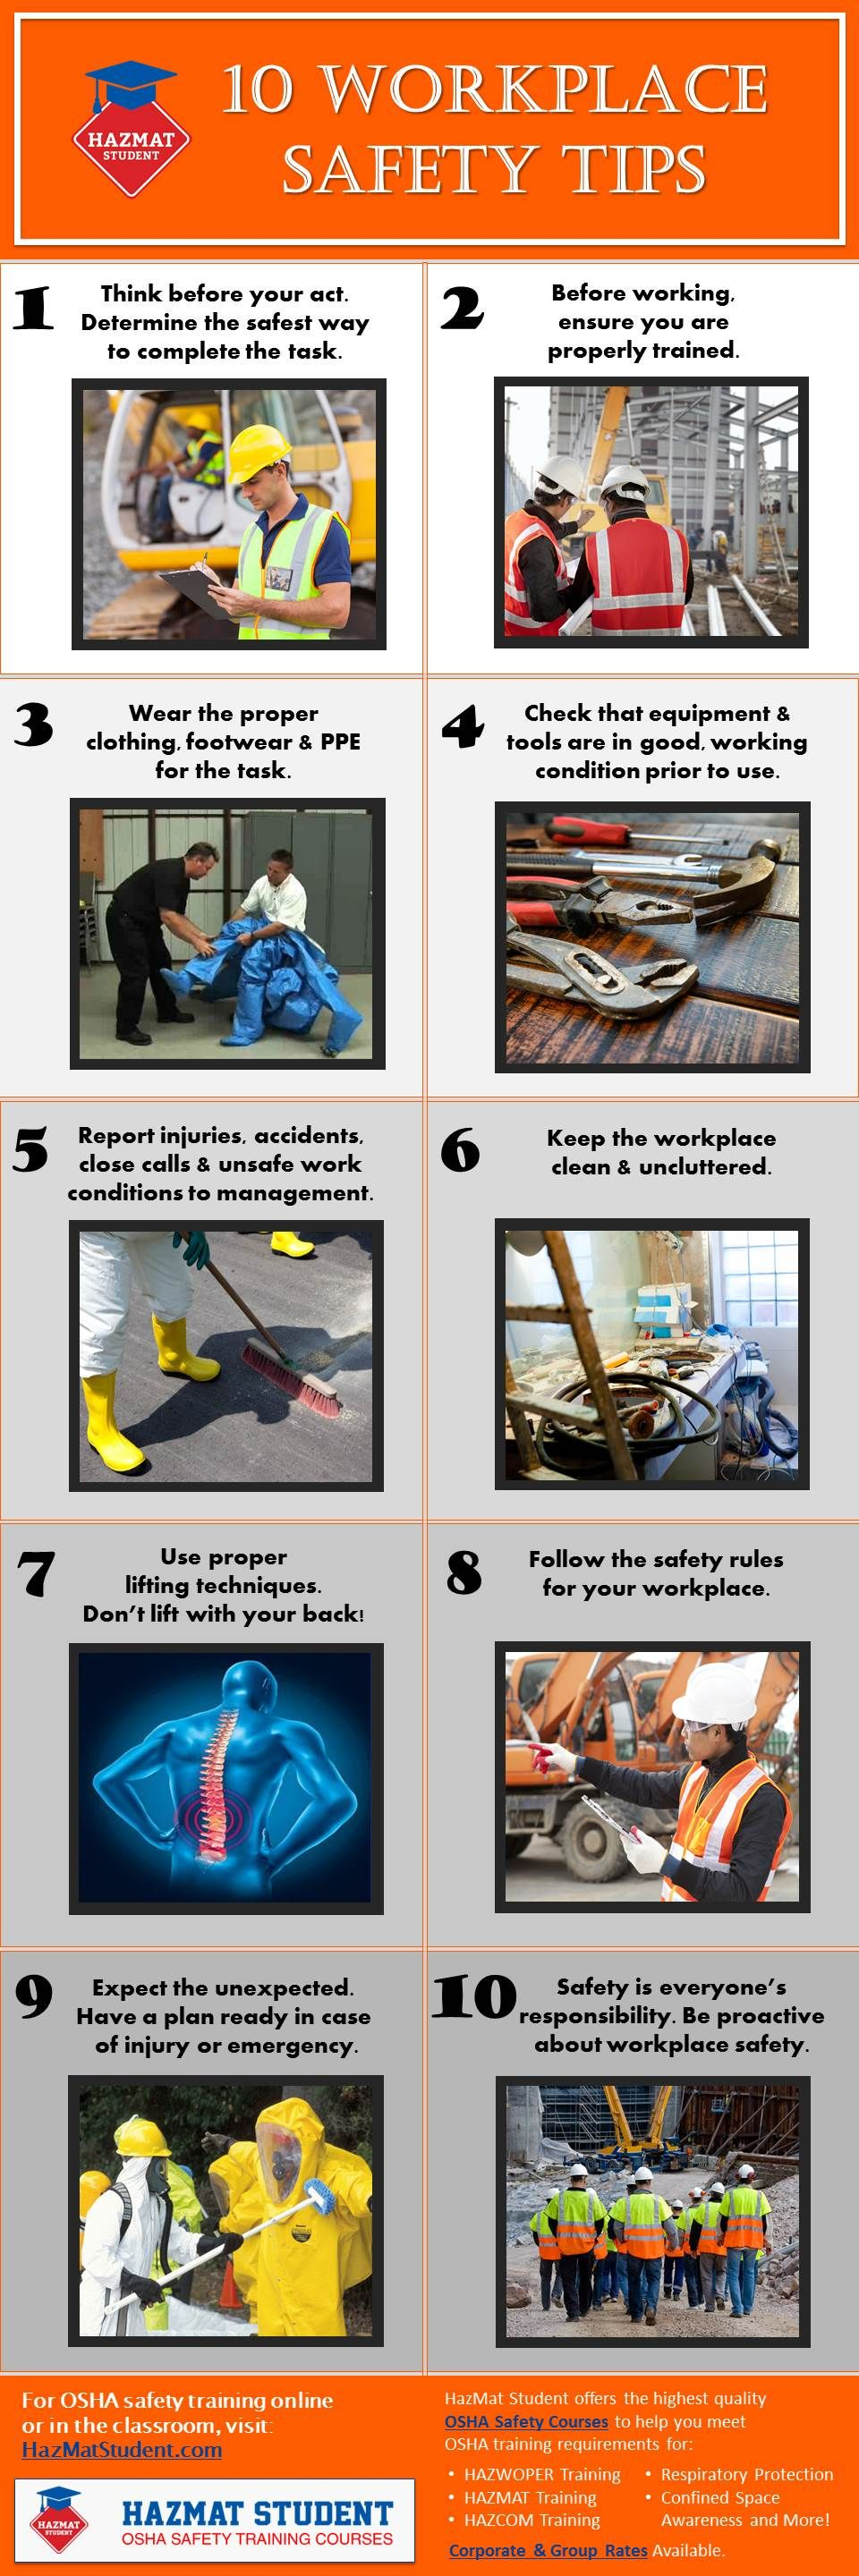 Top 10 Workplace Safety Tips to help prevent injuries and